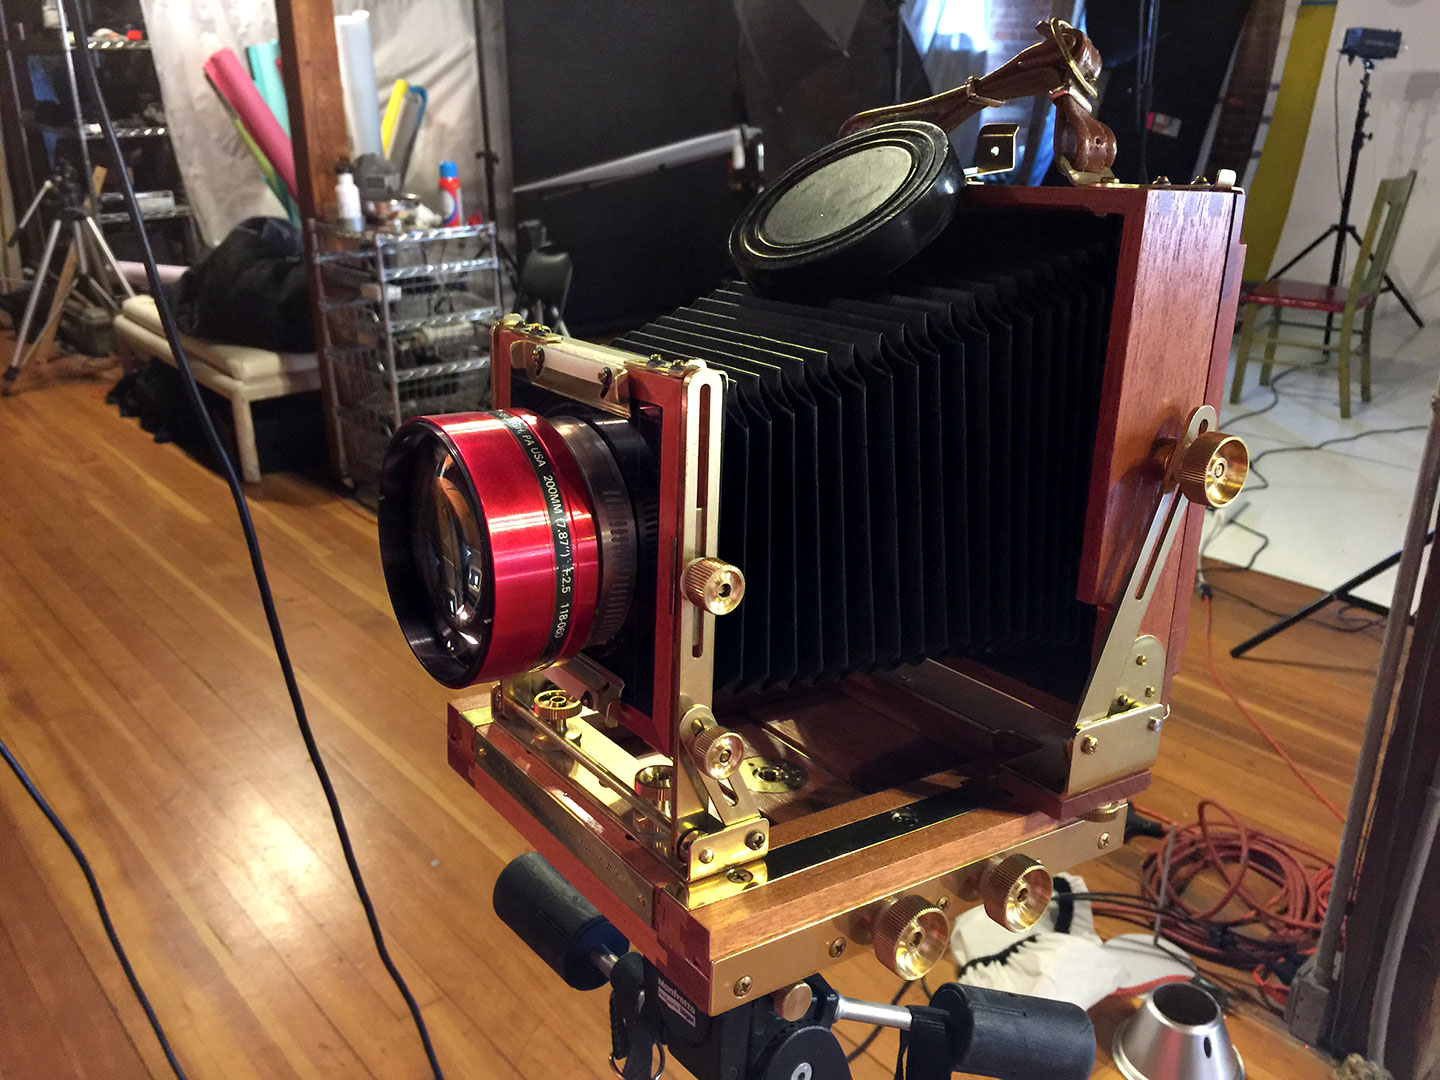 4x5 Large format view camera for the test shot